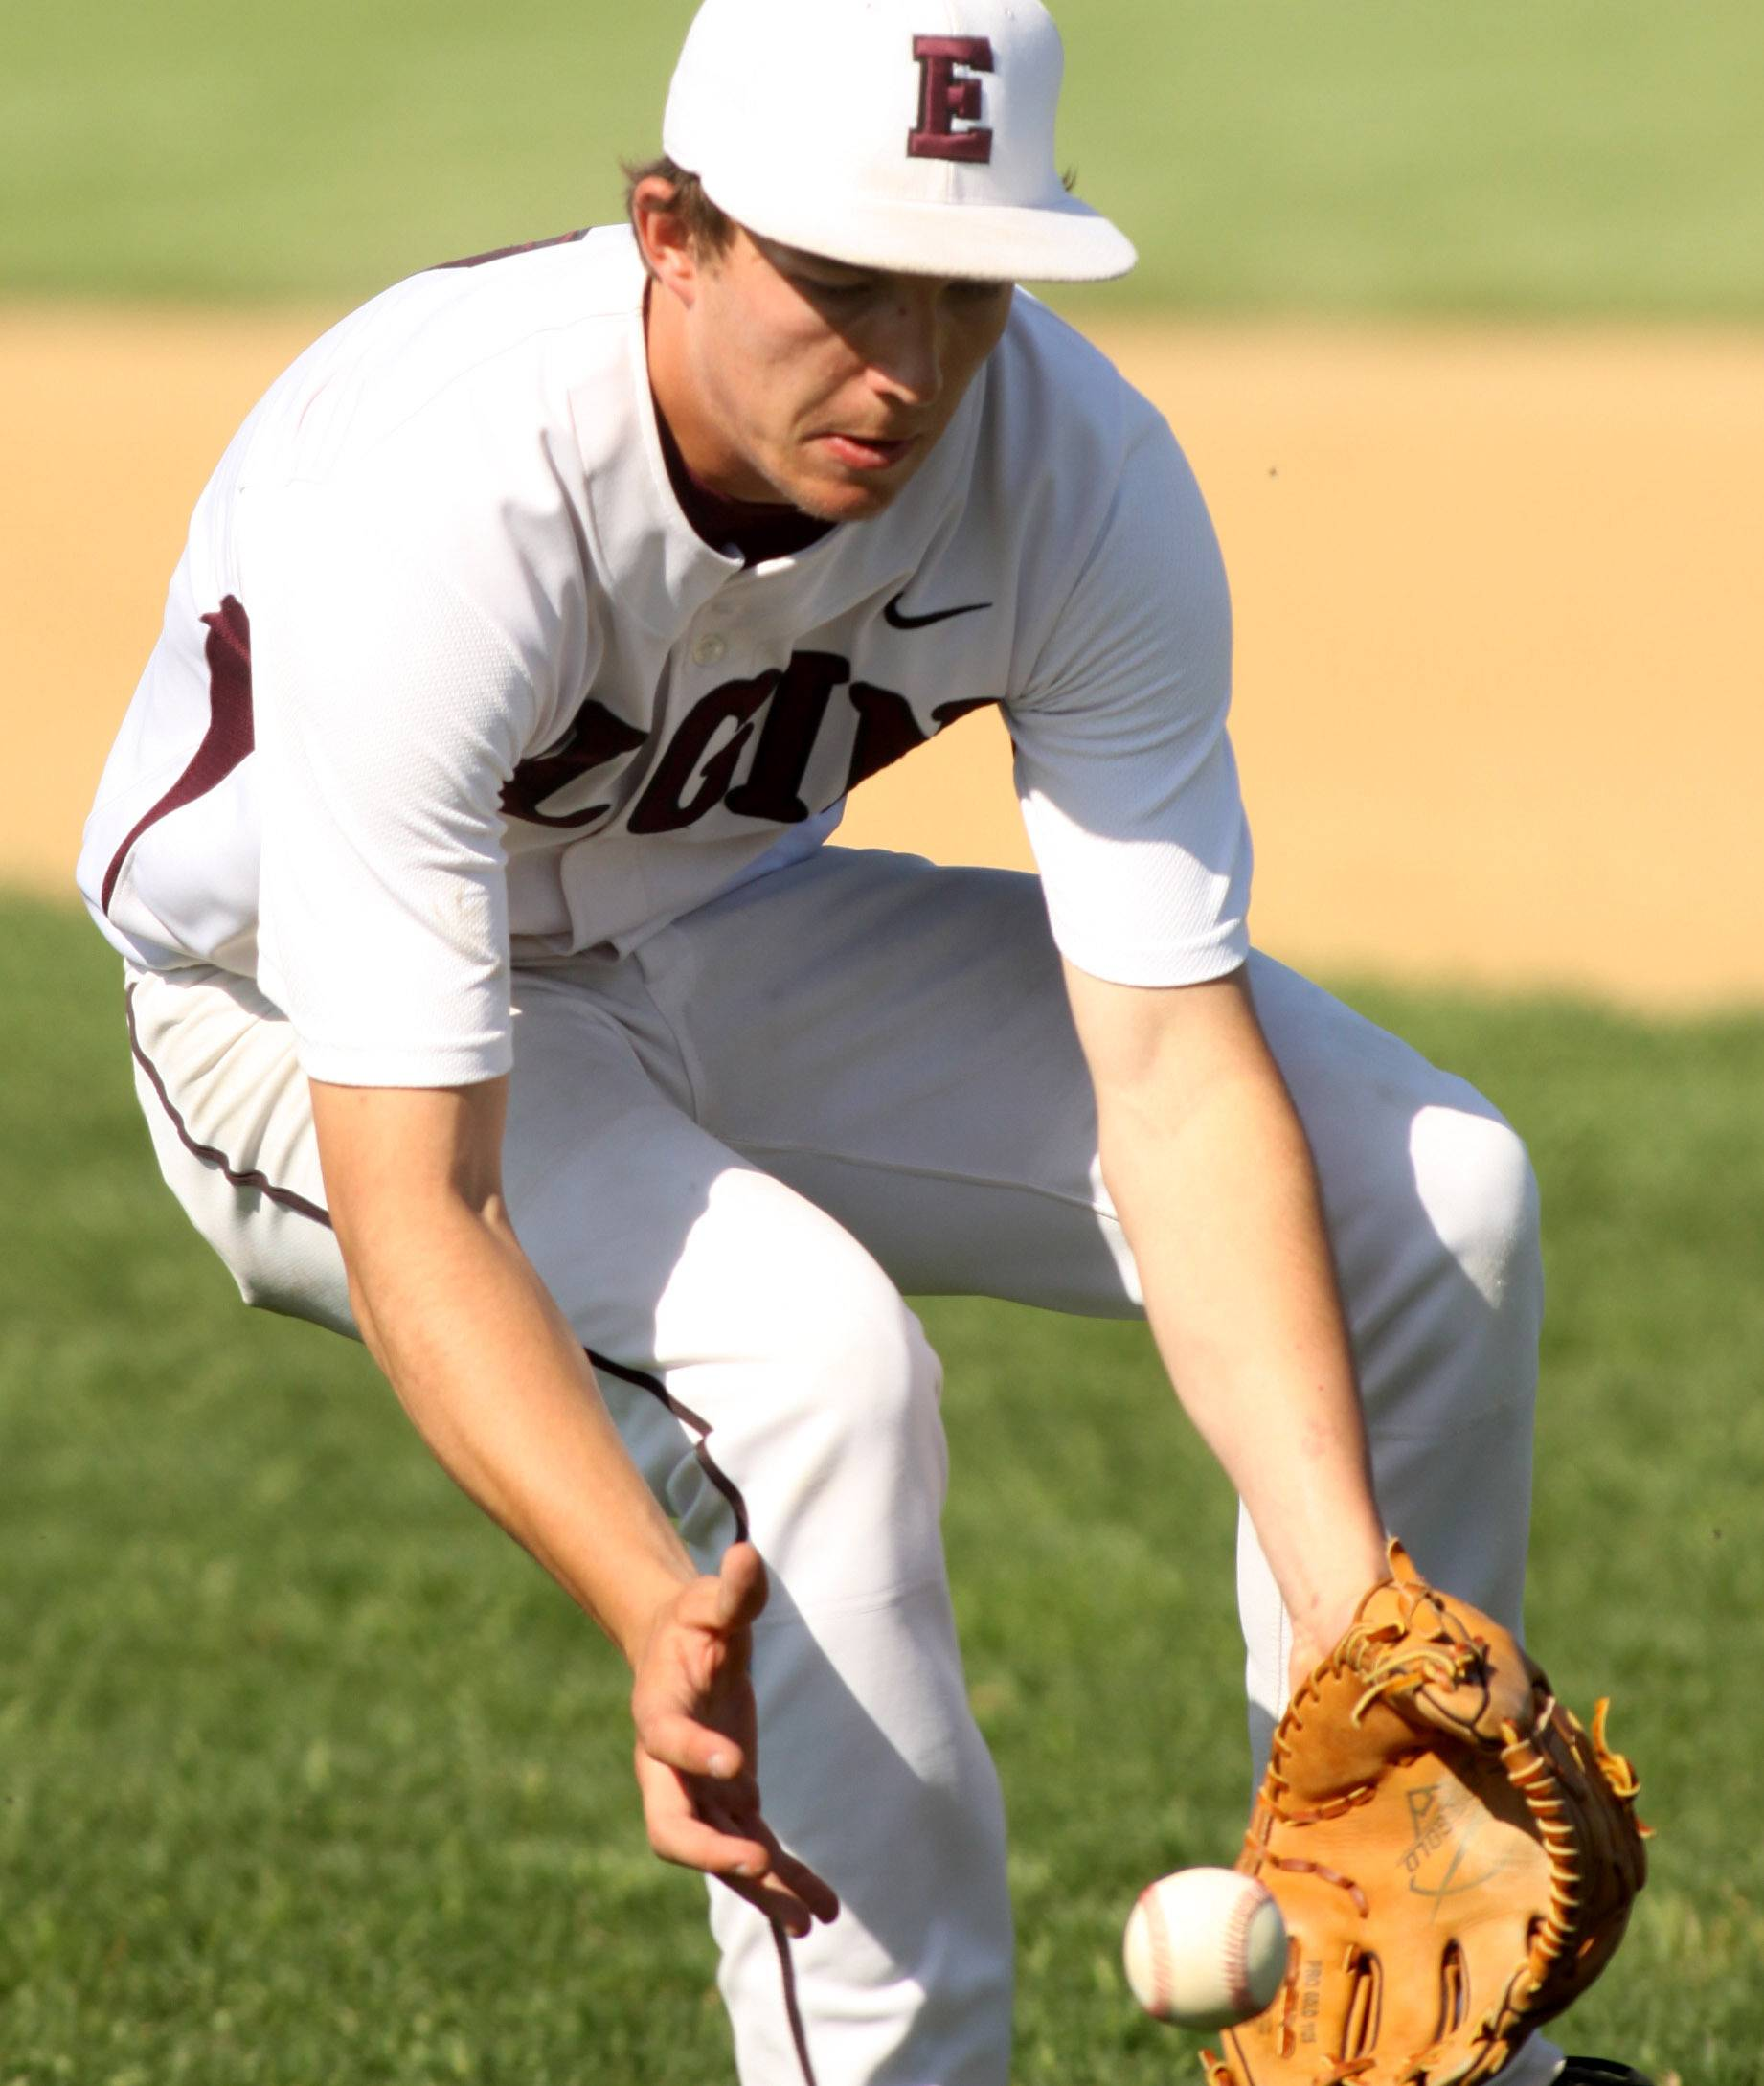 Elgin's Ryan Sitter fields a grounder before firing to first for an out against Hoffman Estates last season. The Maroons are scheduled to host St. Edward at 11 a.m. Saturday.